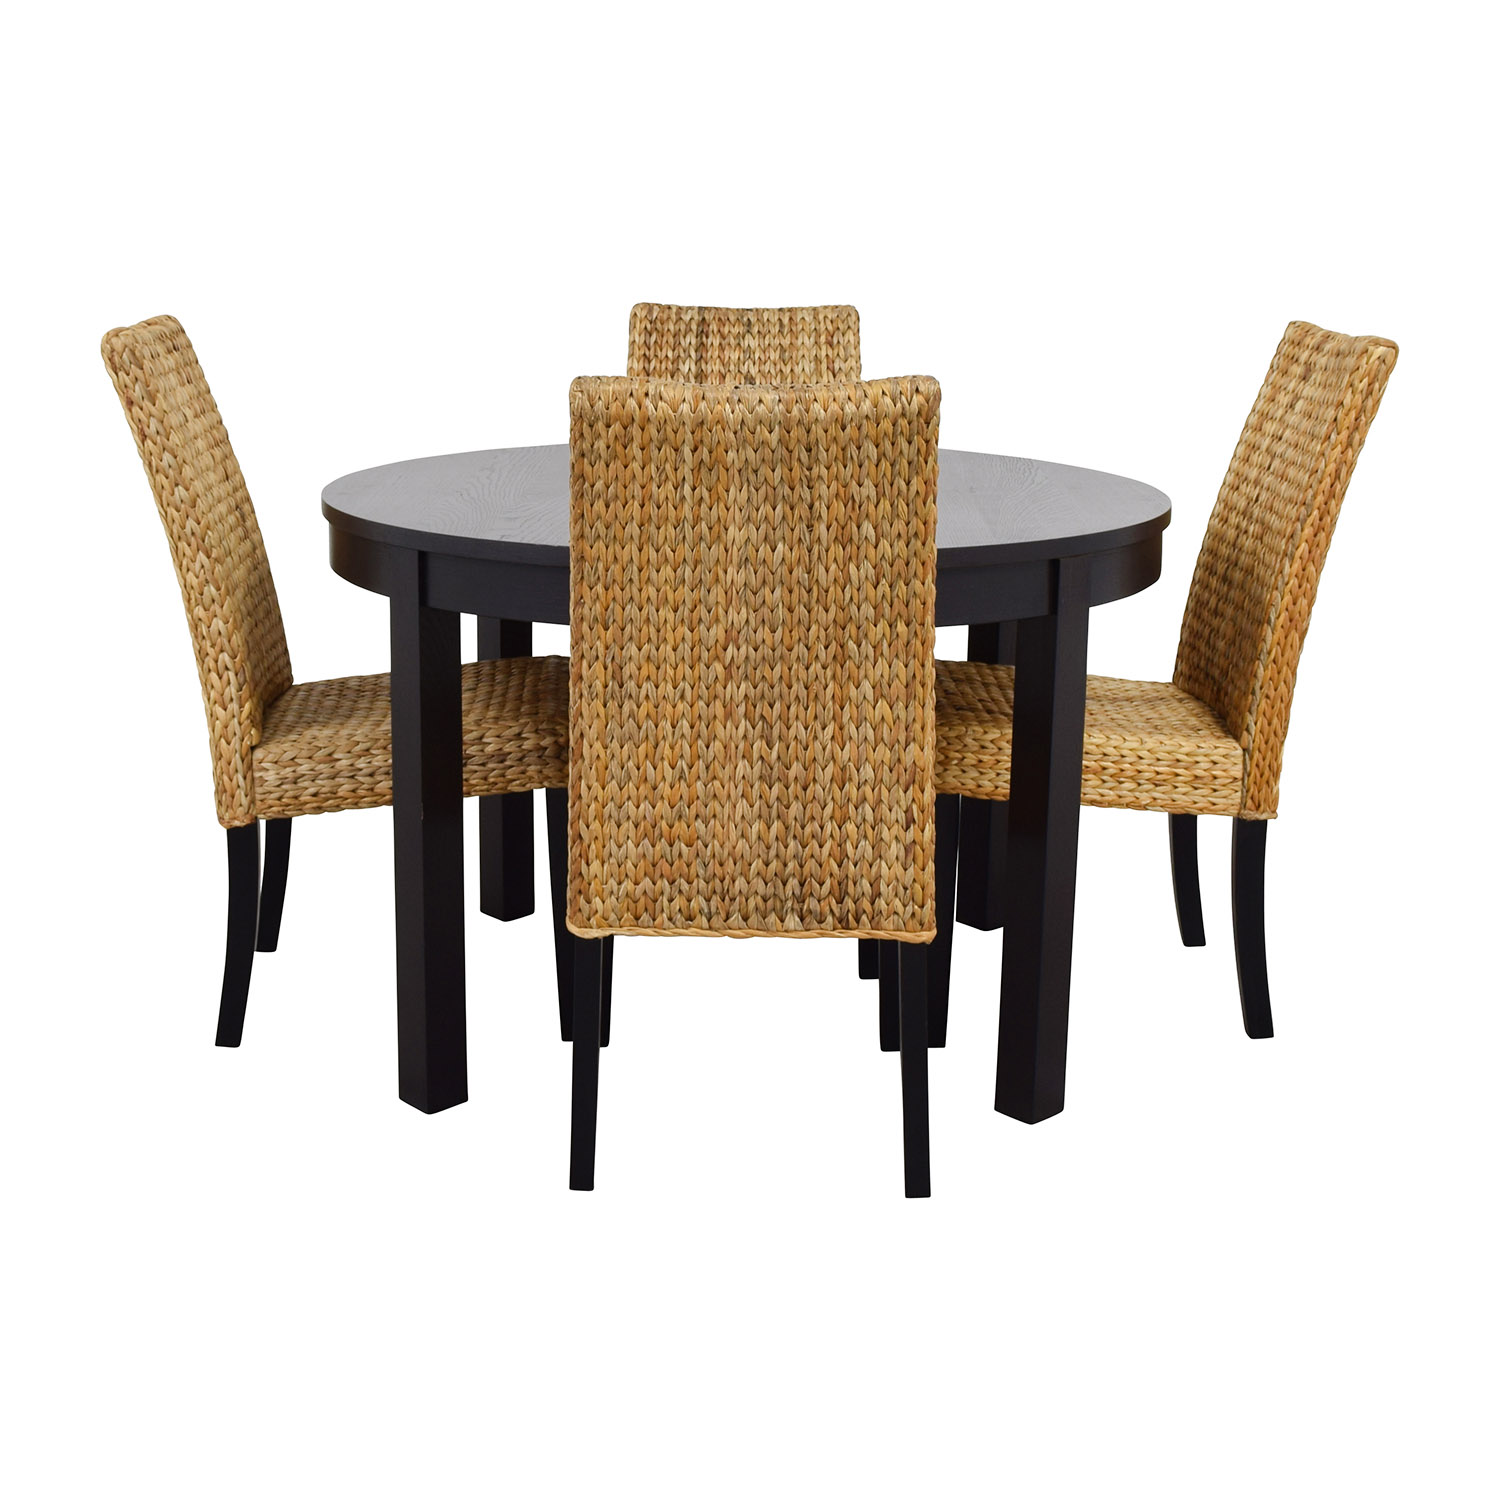 Dining Chairs Set 66 Off Macy 39s And Ikea Round Black Dining Table Set With